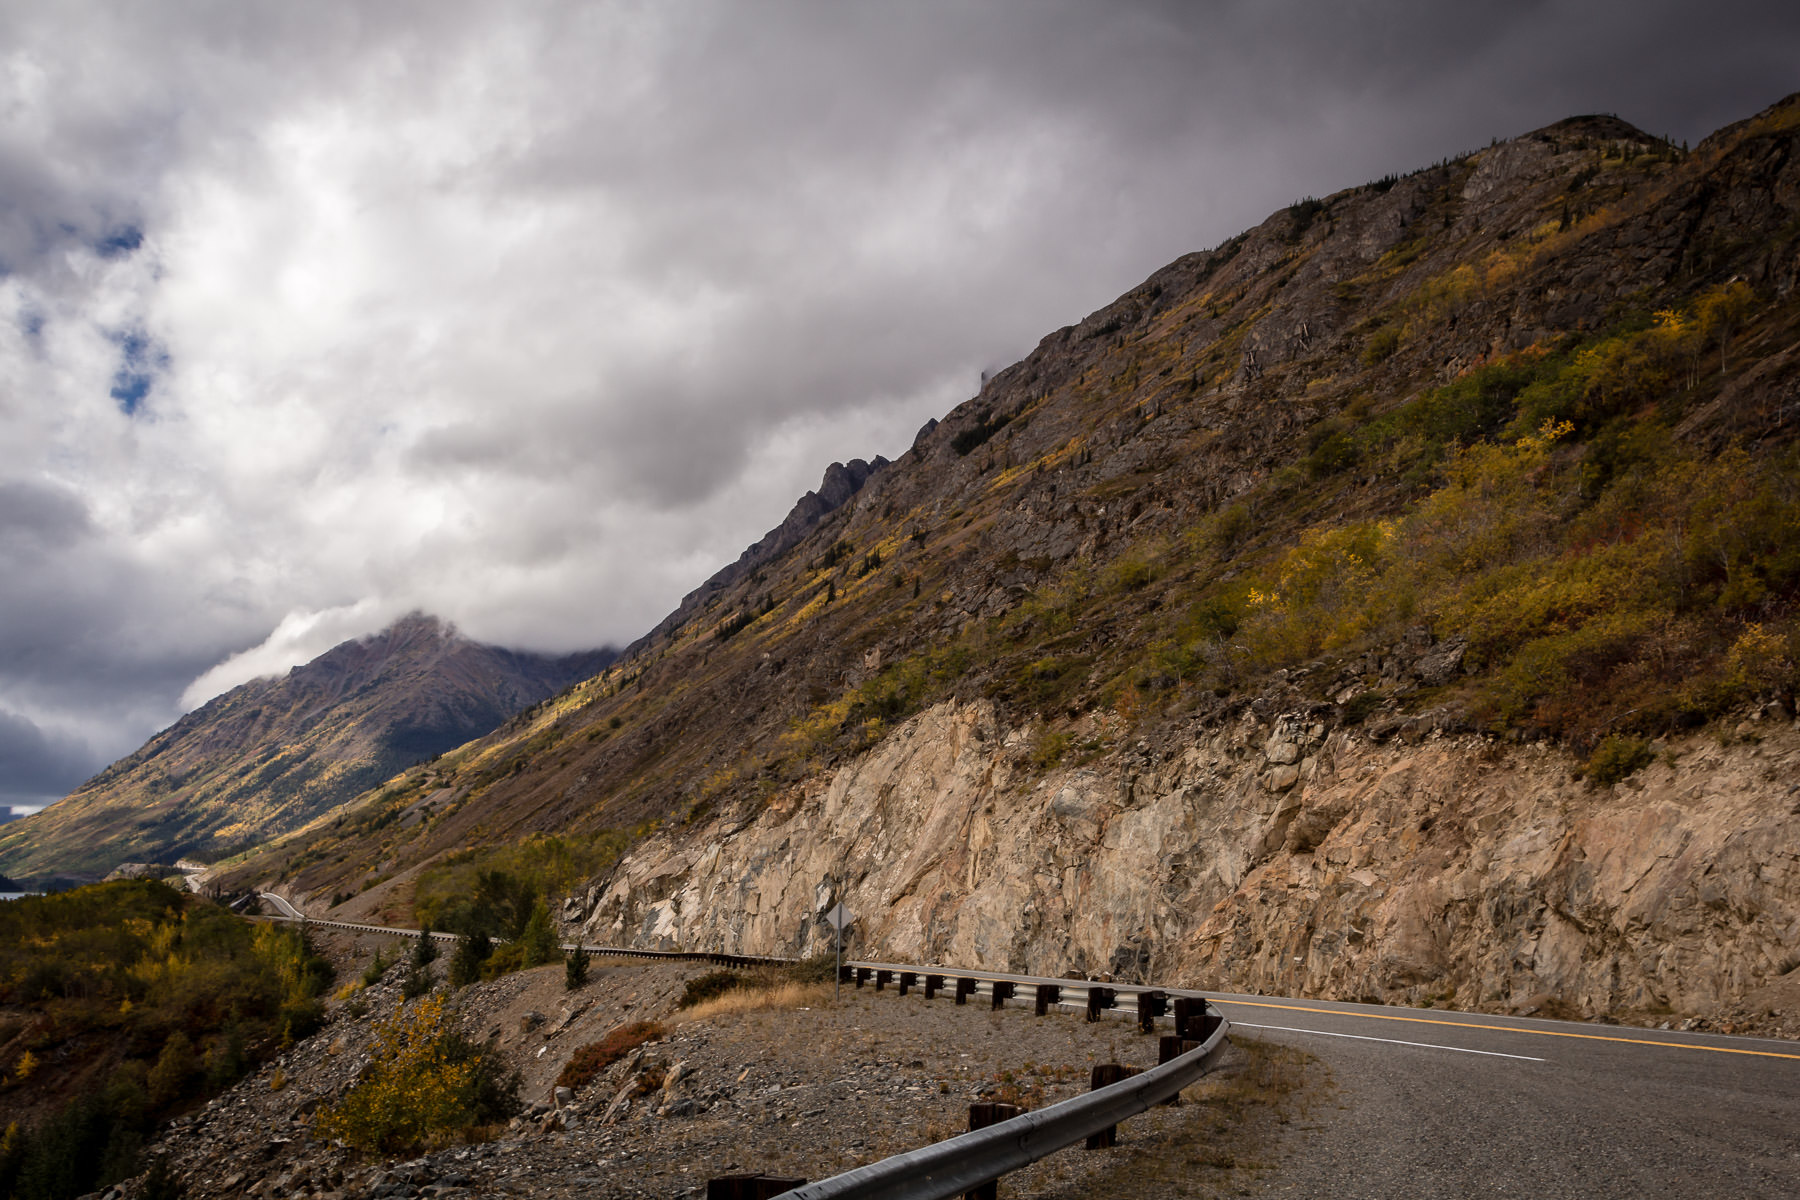 Storm clouds form over the mountains along the Klondike Highway in Canada's Yukon Territory.